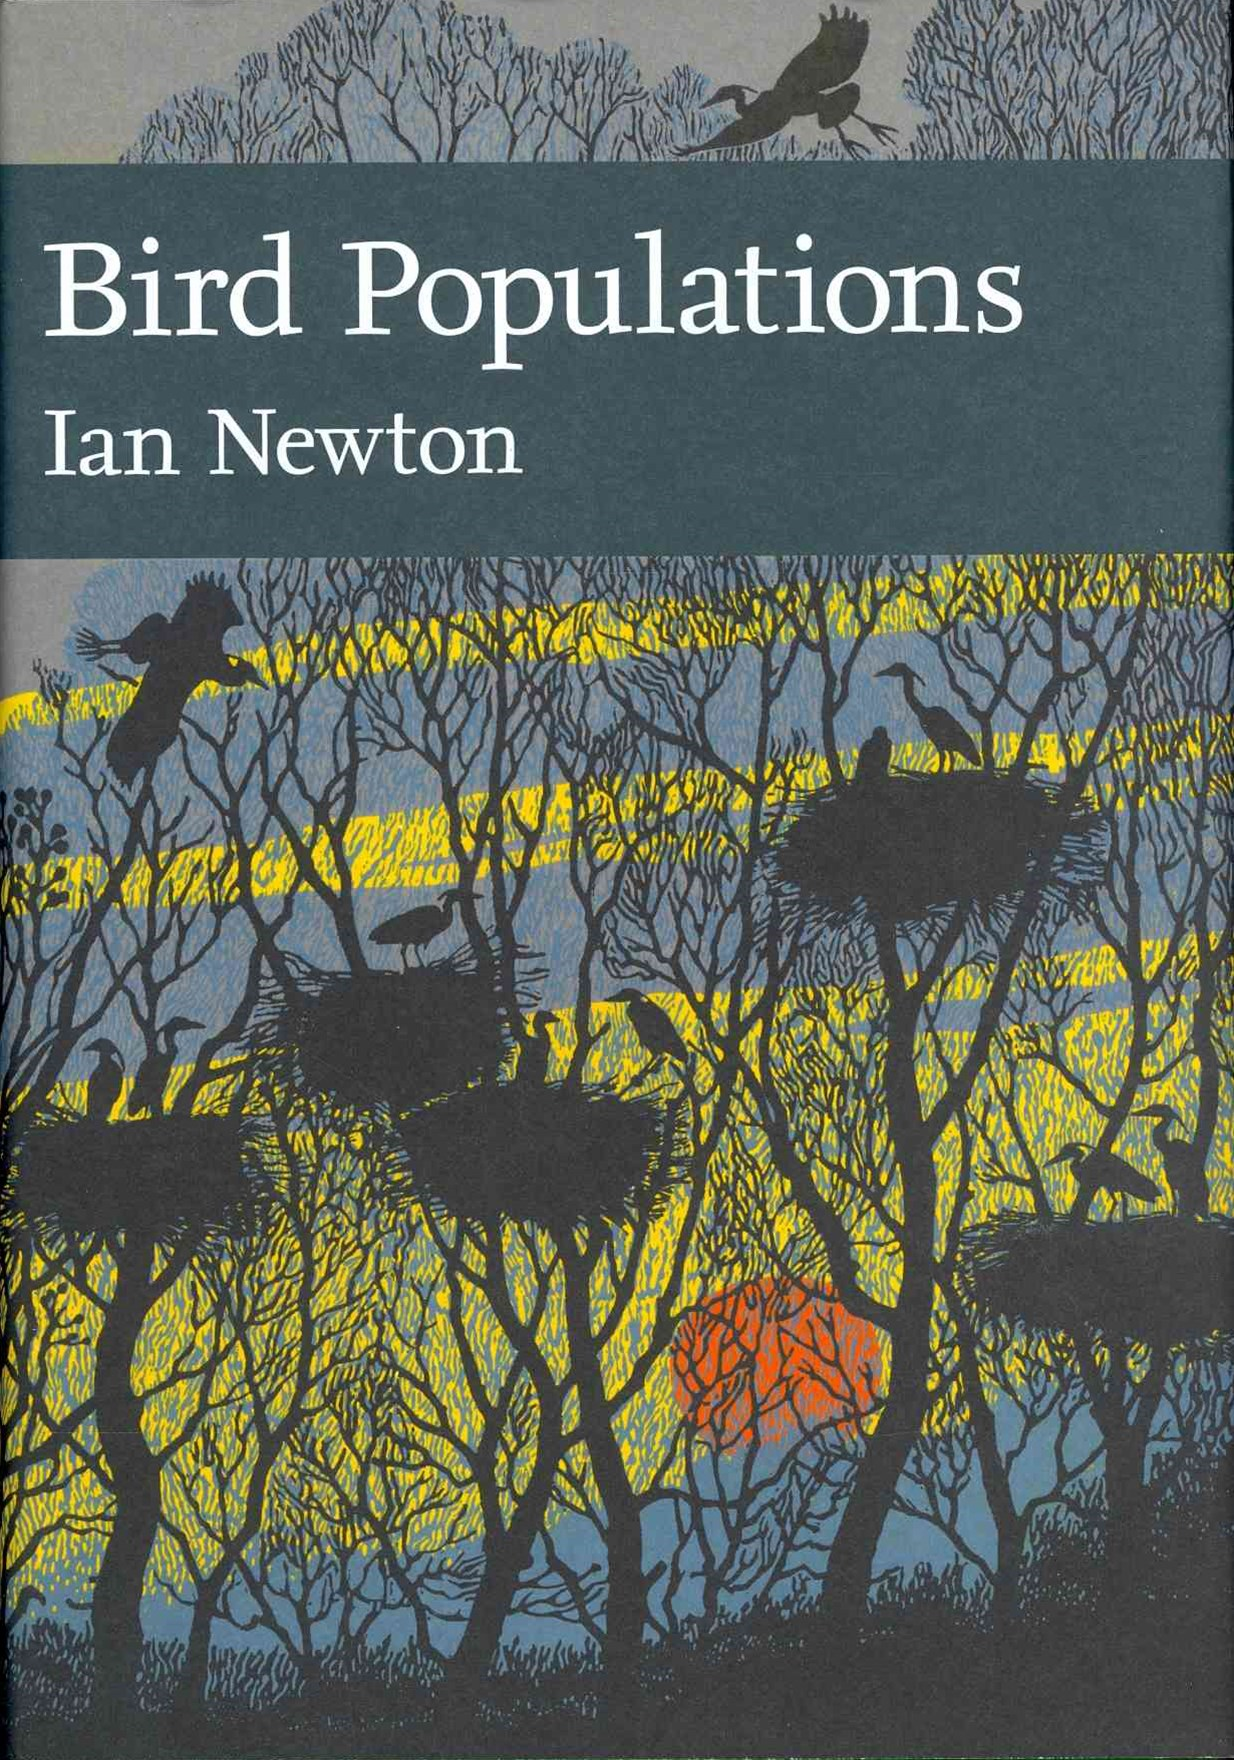 Collins New Naturalist Library: Bird Populations